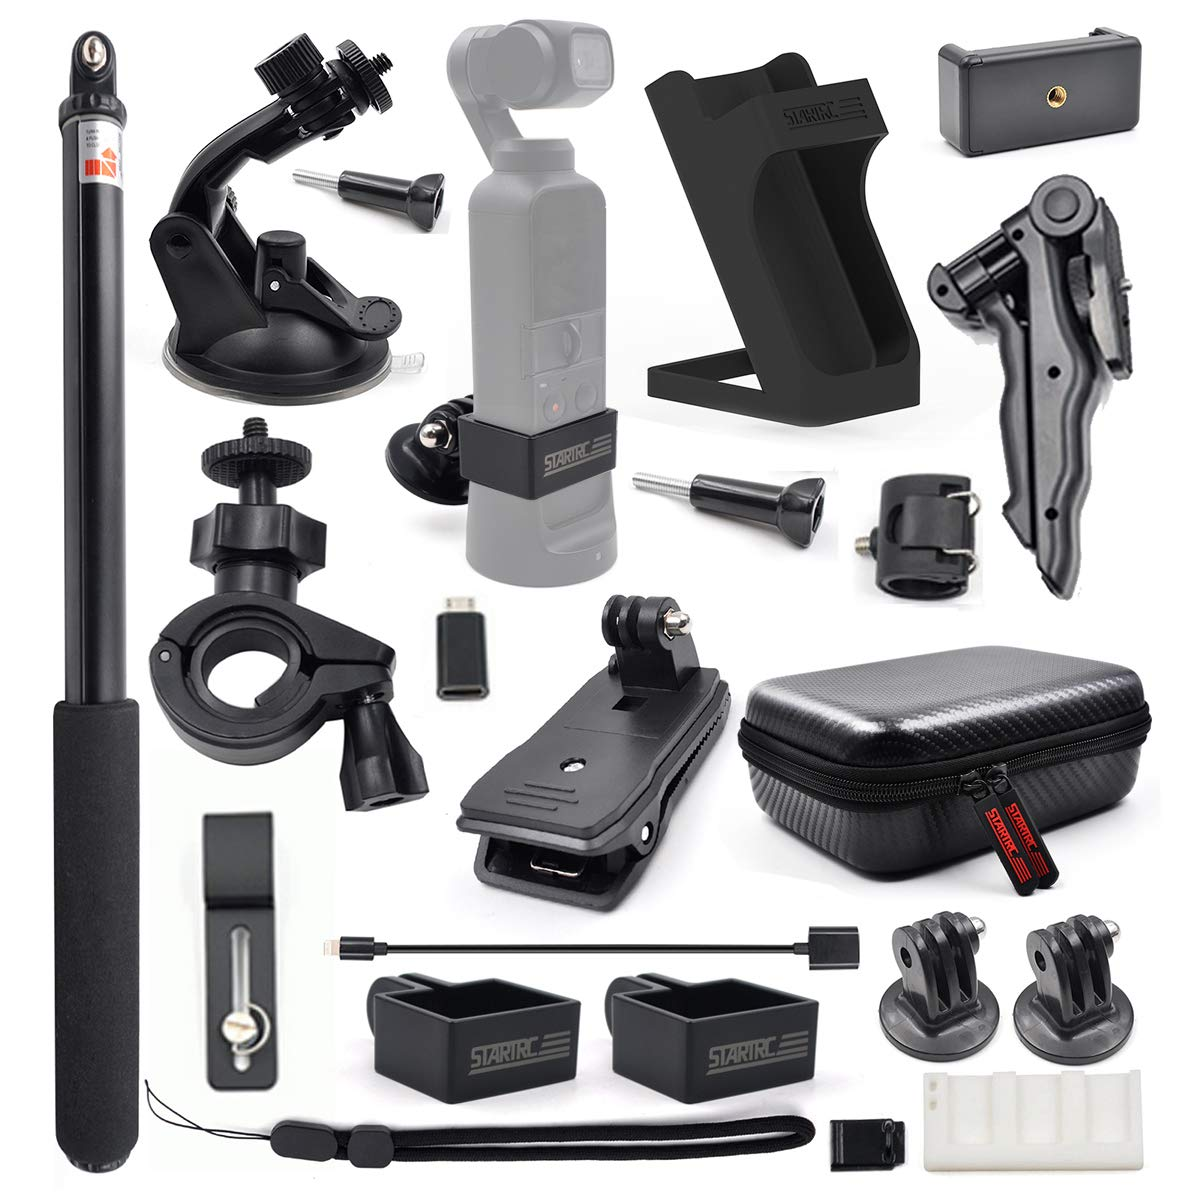 STARTRC OSMO Pocket Expansion Accessories Kit, Handheld Action Camera Mounts for DJI OSMO Pocket Cameras Accessories